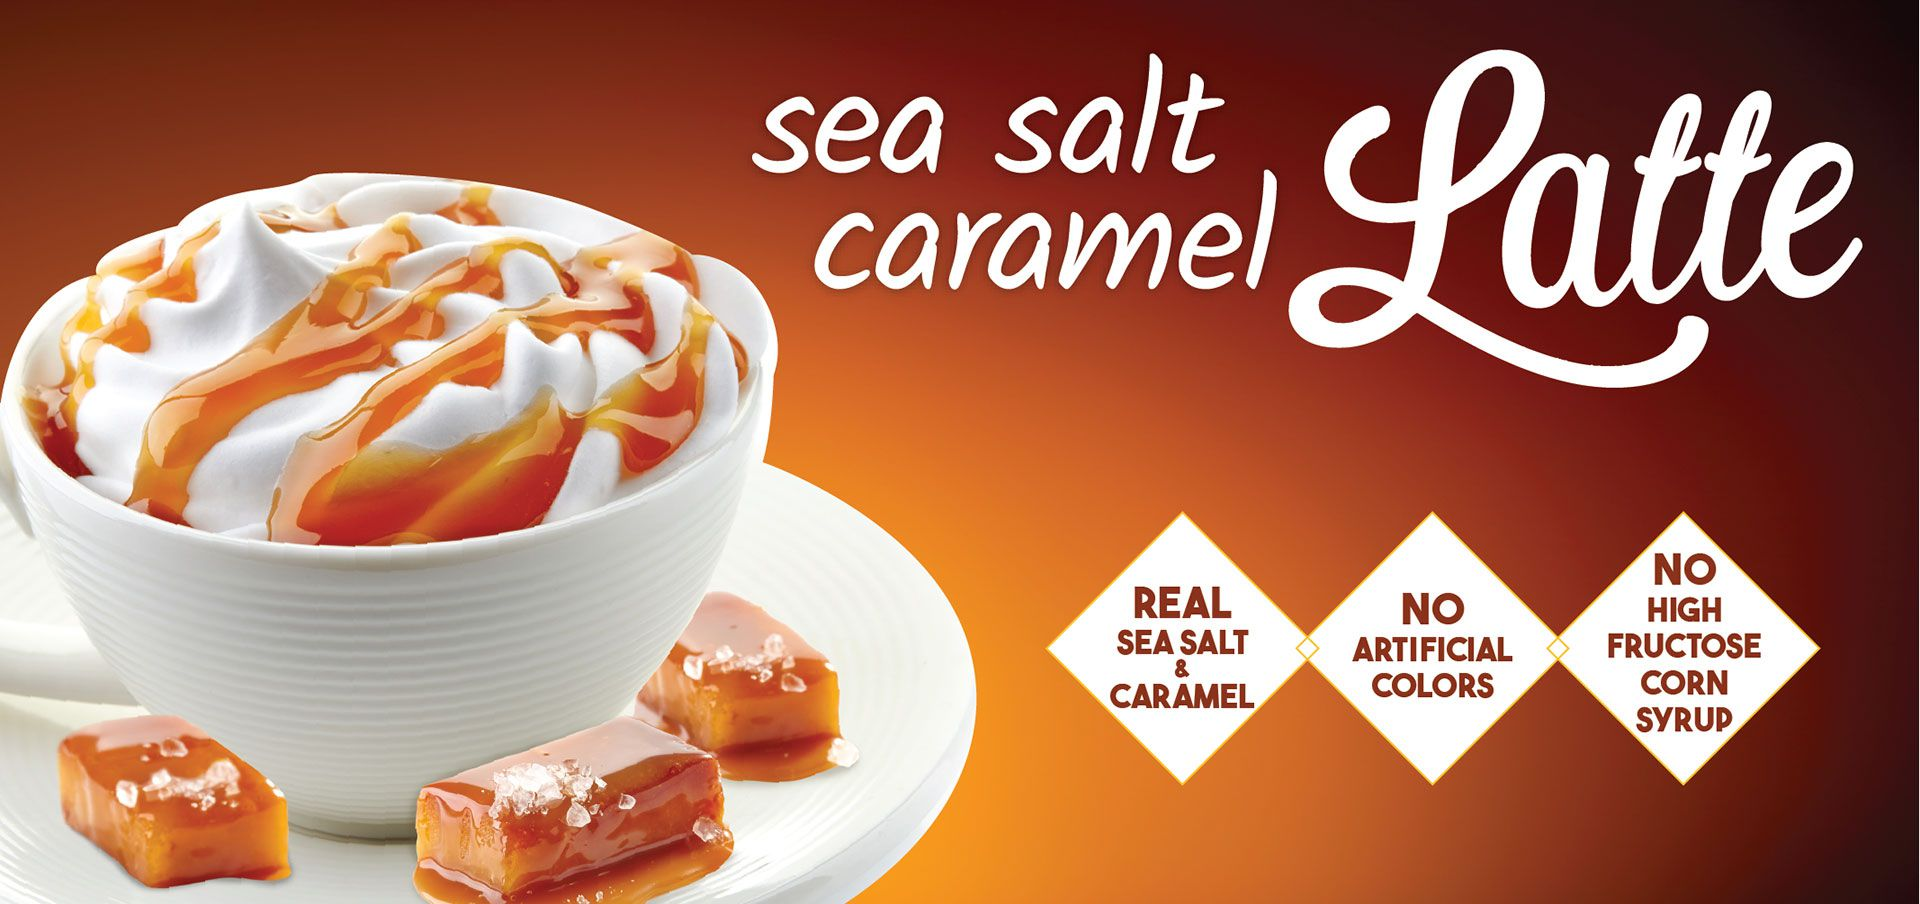 sea salt caramel latte label image